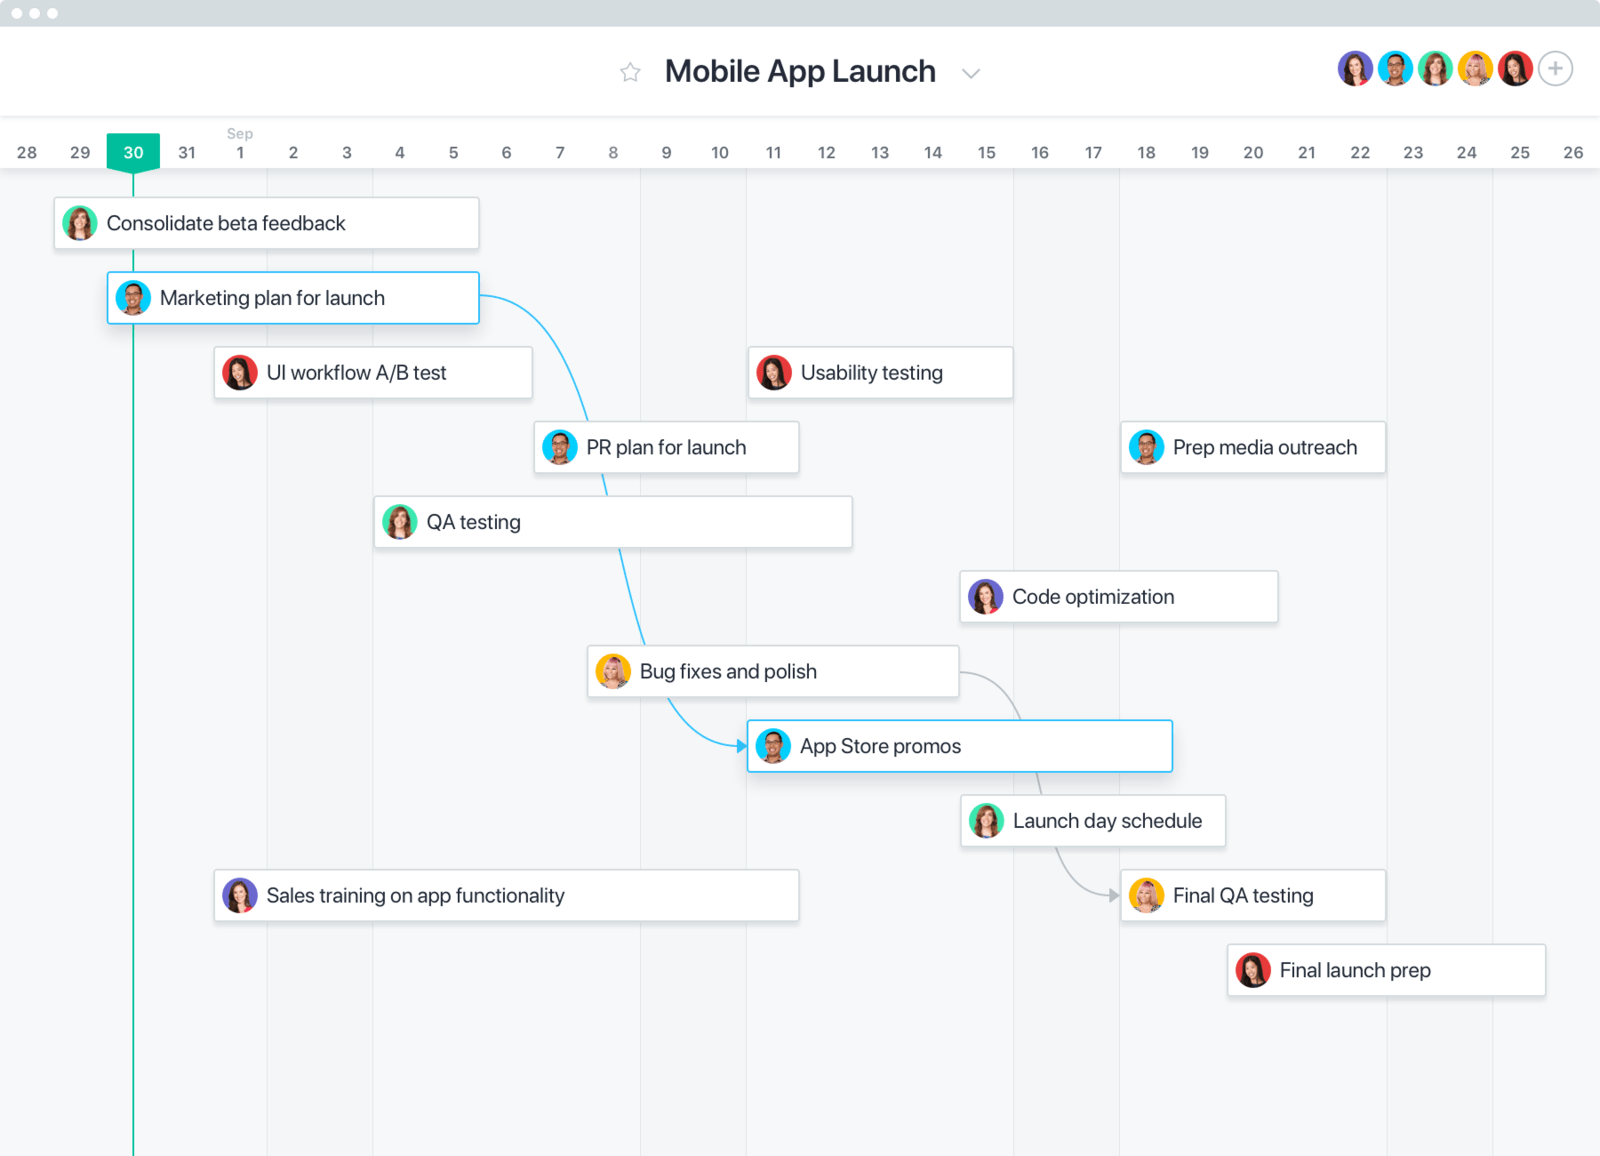 Asana project management app with task dependencies.